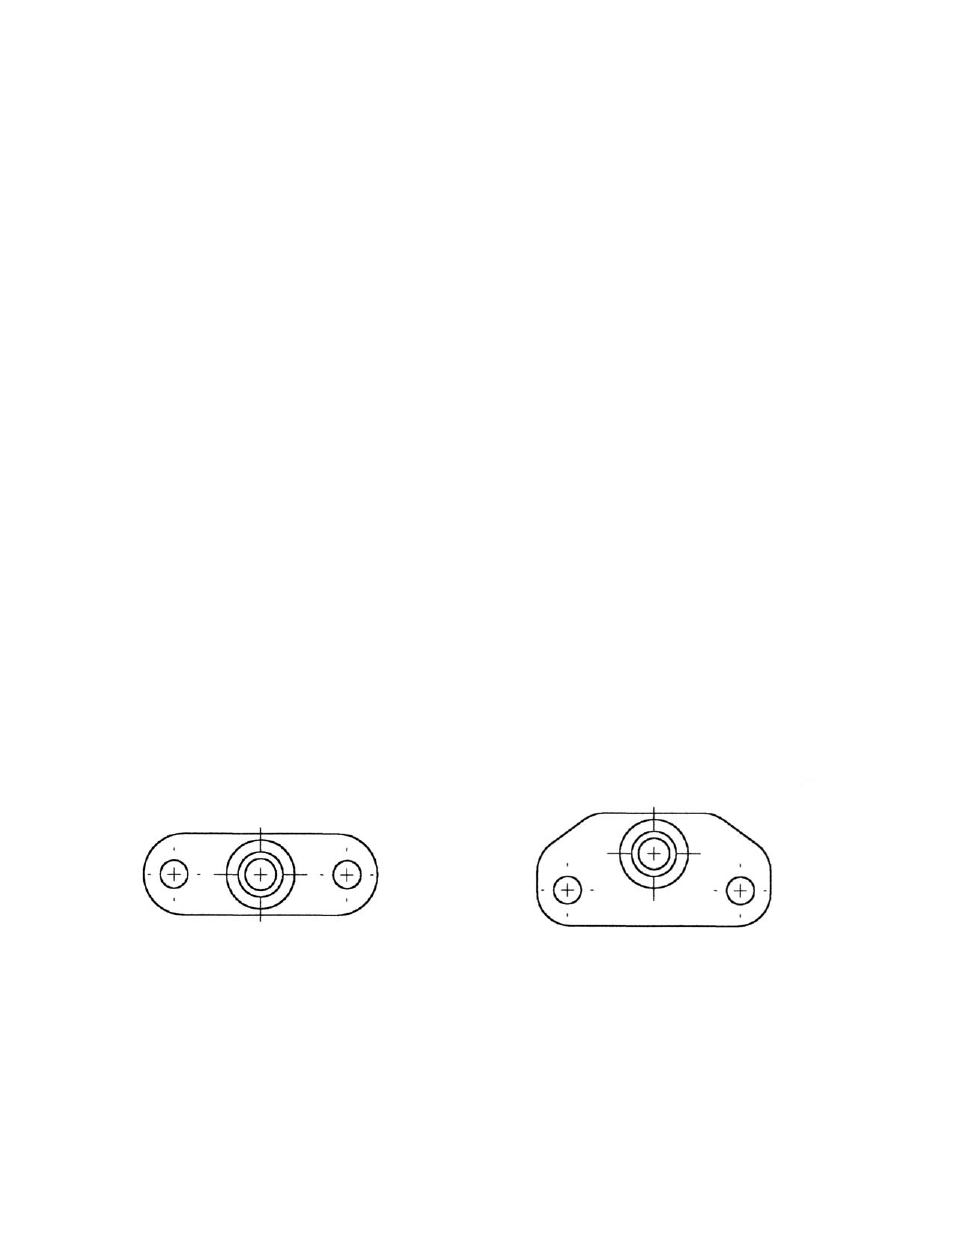 aem 25-304bk honda/acura adjustable fuel pressure regualtor user manual |  page 2 / 9 | also for: 25-303bk honda/acura adjustable fuel pressure  regualtor,